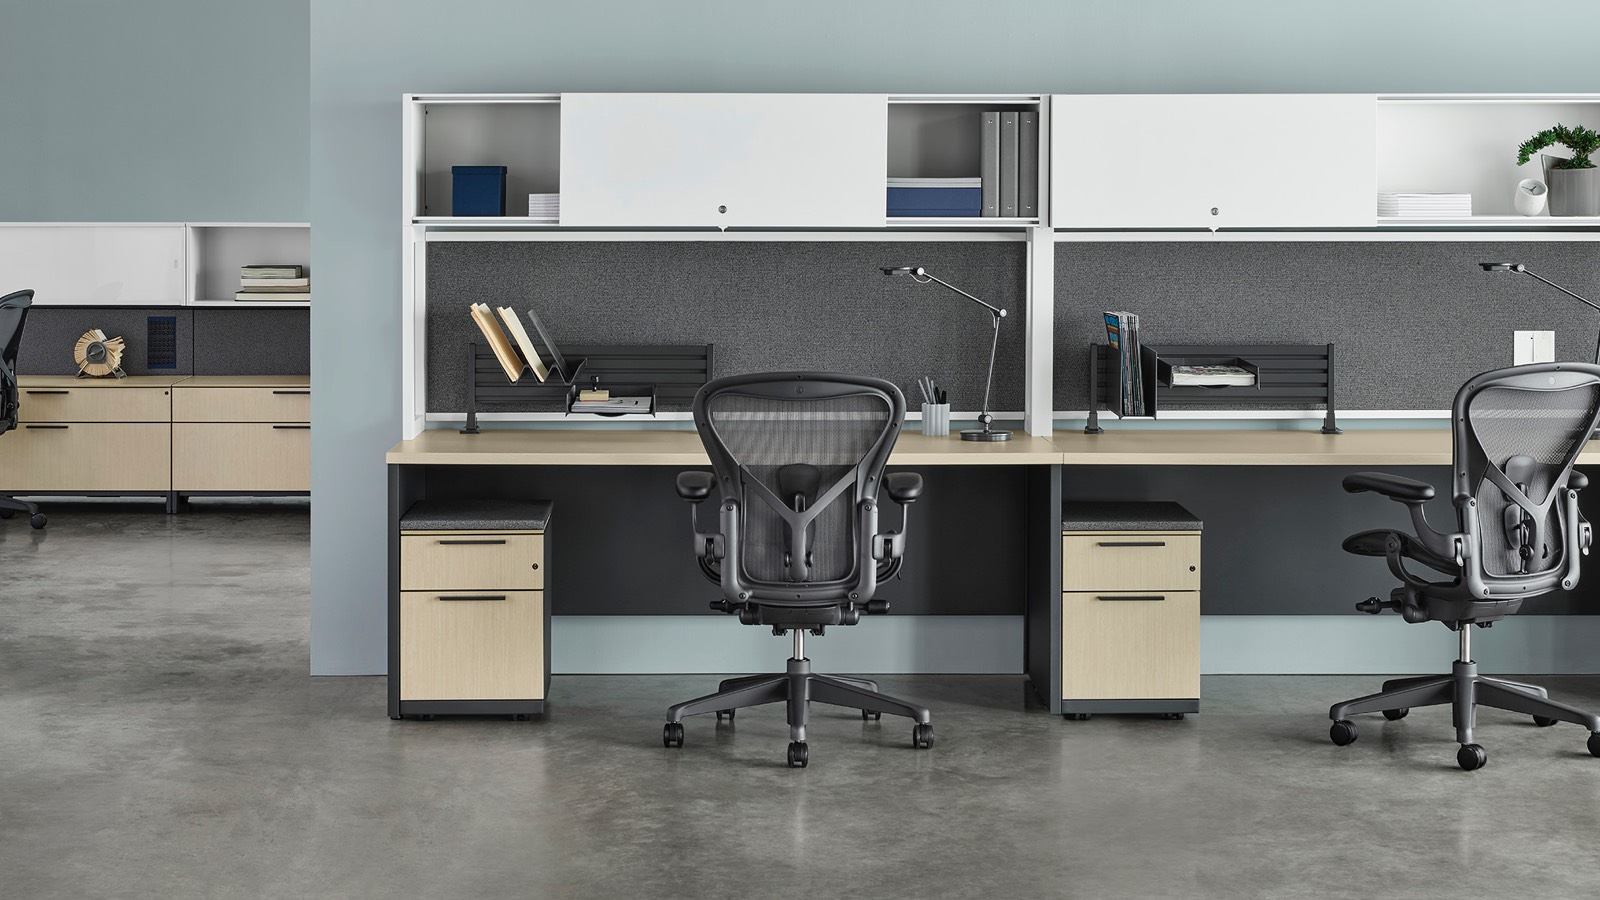 Three Canvas Metal Desks with white upper storage, gray fabric back panels, and light wood surfaces with another workstation in the background, all with dark grey Aeron chairs.